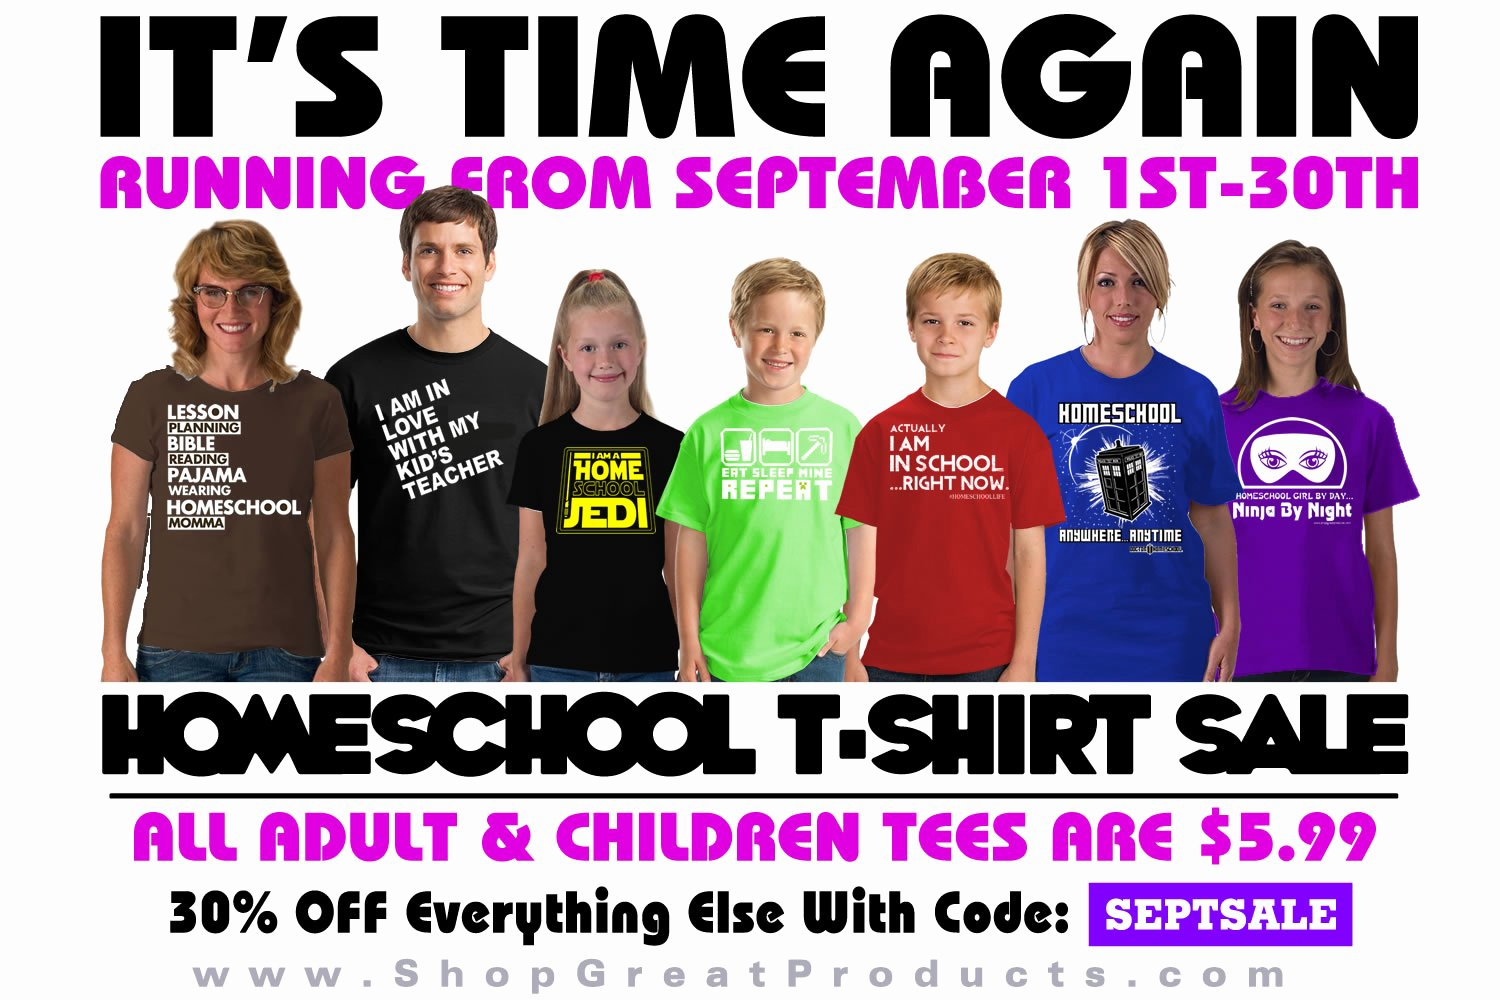 T Shirt Sale Flyer Lovely Chickensbunniesandhomeschool Shop Great Products $5 T